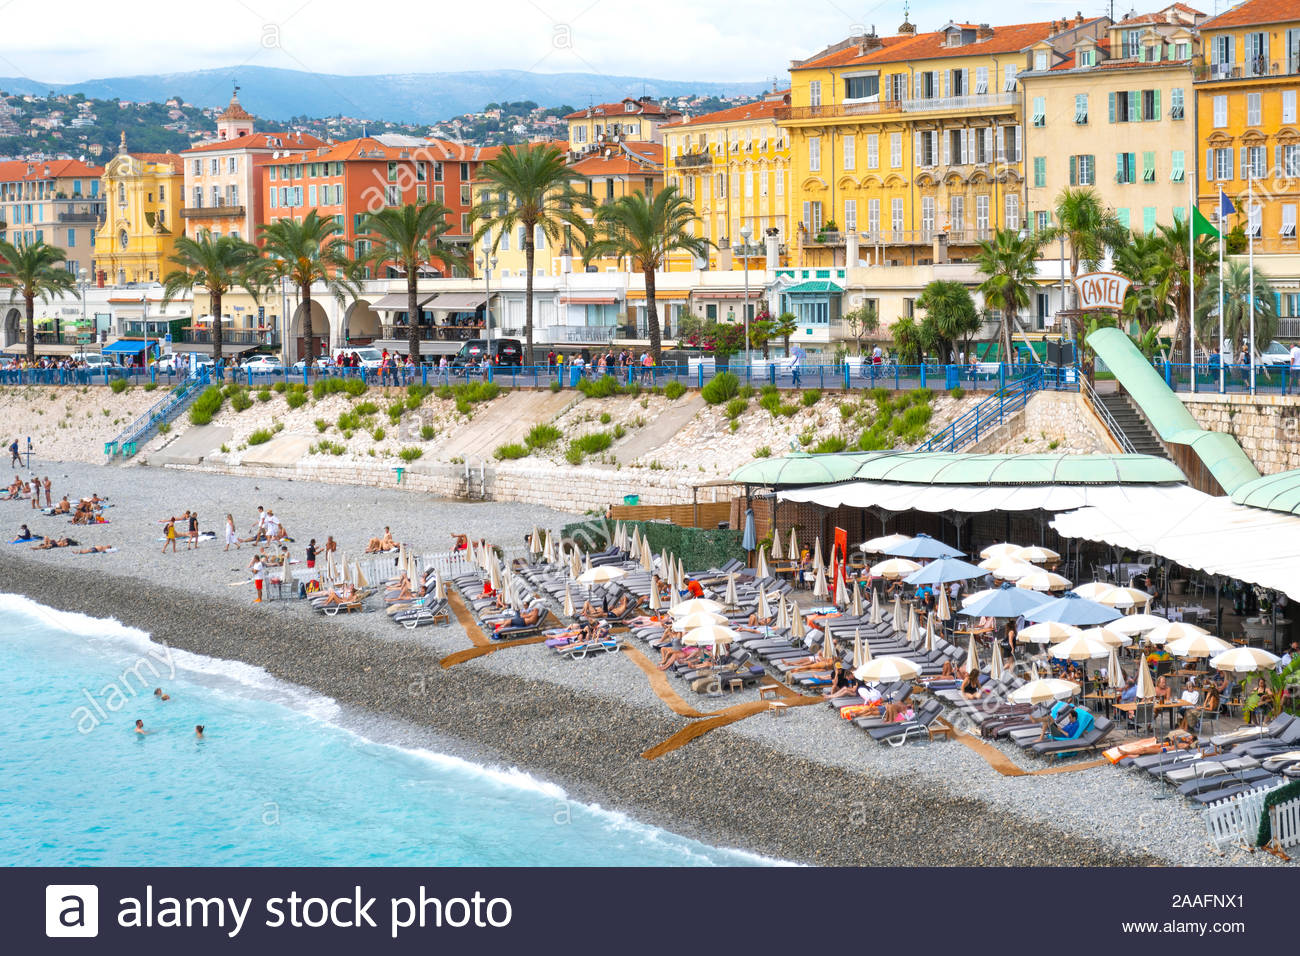 Tourists enjoy the Castel Plage private beach club and restaurant on the shores of the Bay of Angels on the Riviera in Nice, France Stock Photo